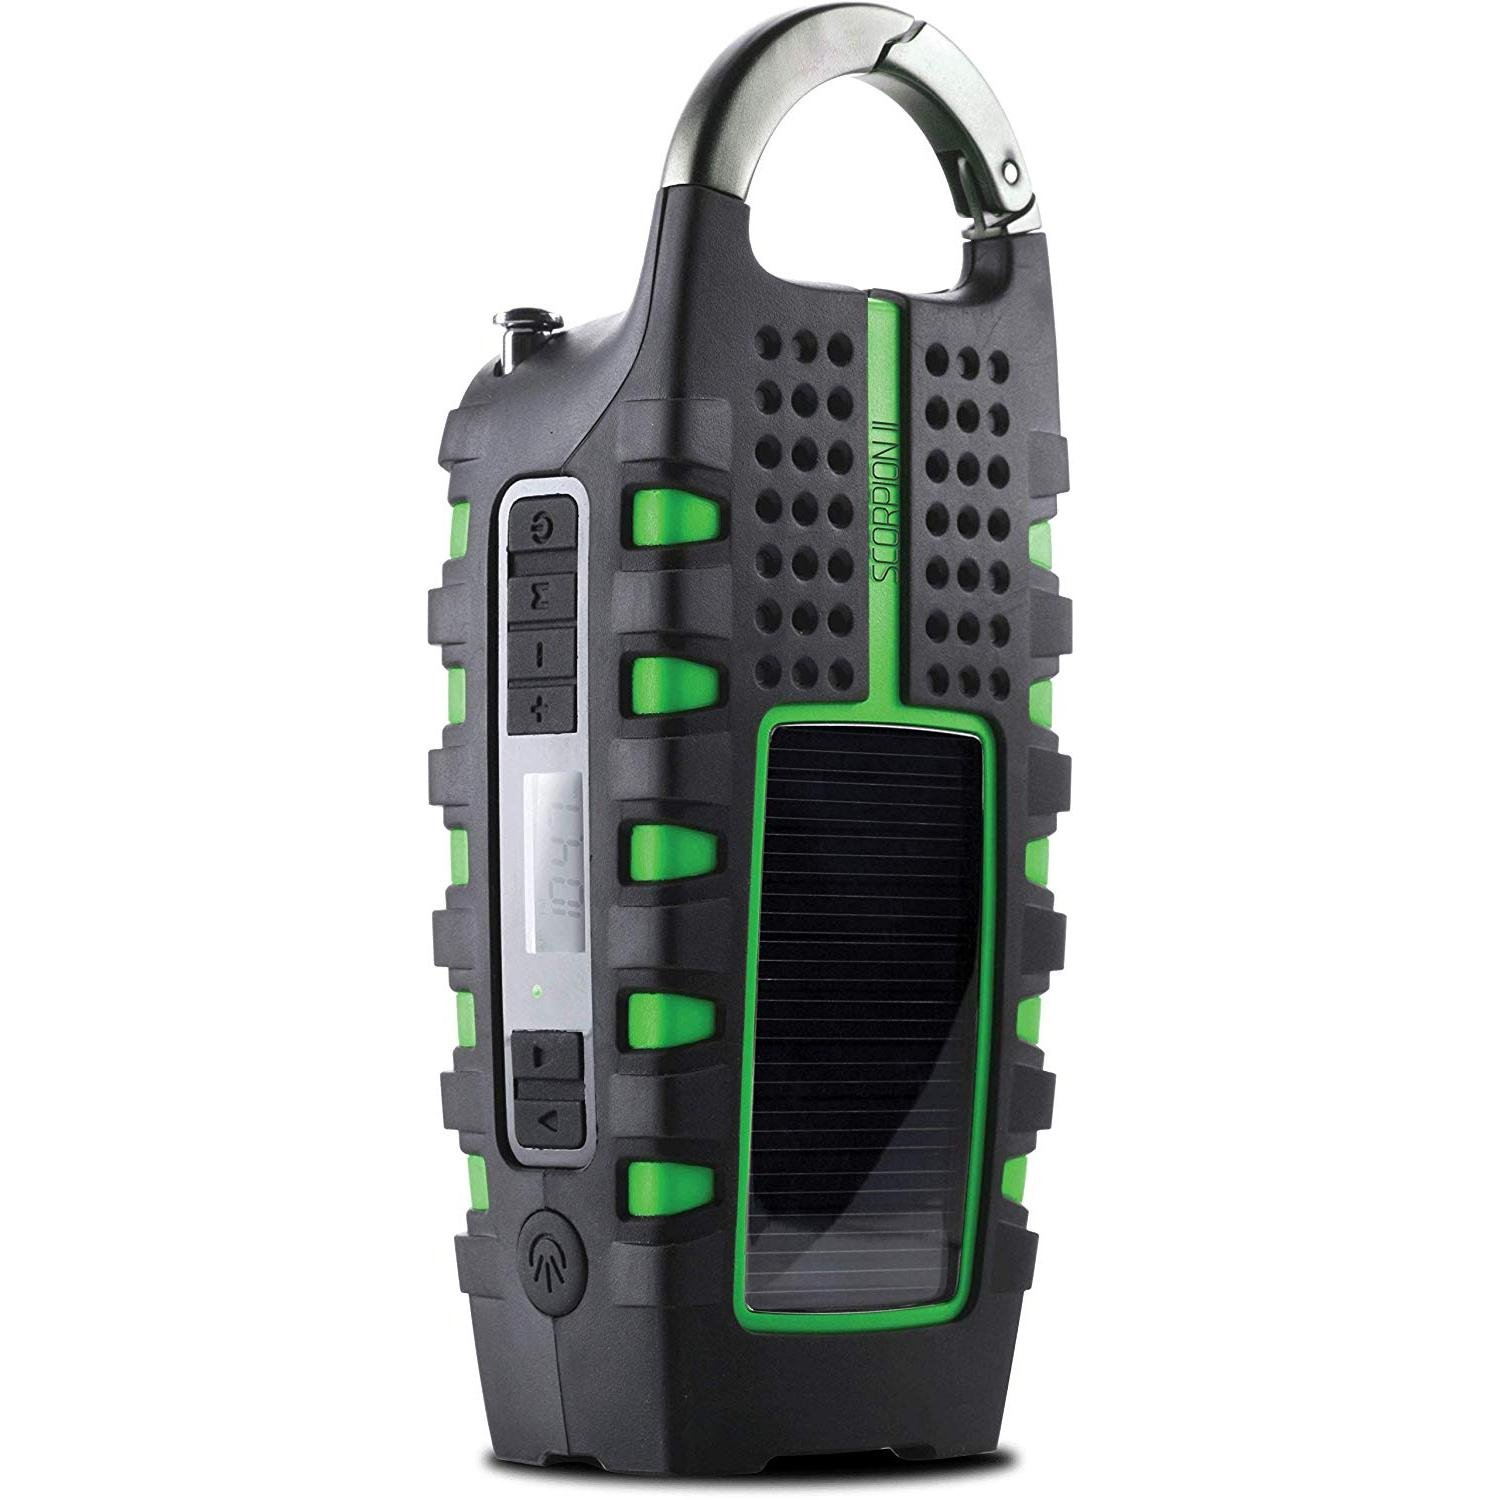 Multipowered Portable Emergency Weather Radio & Flashlight